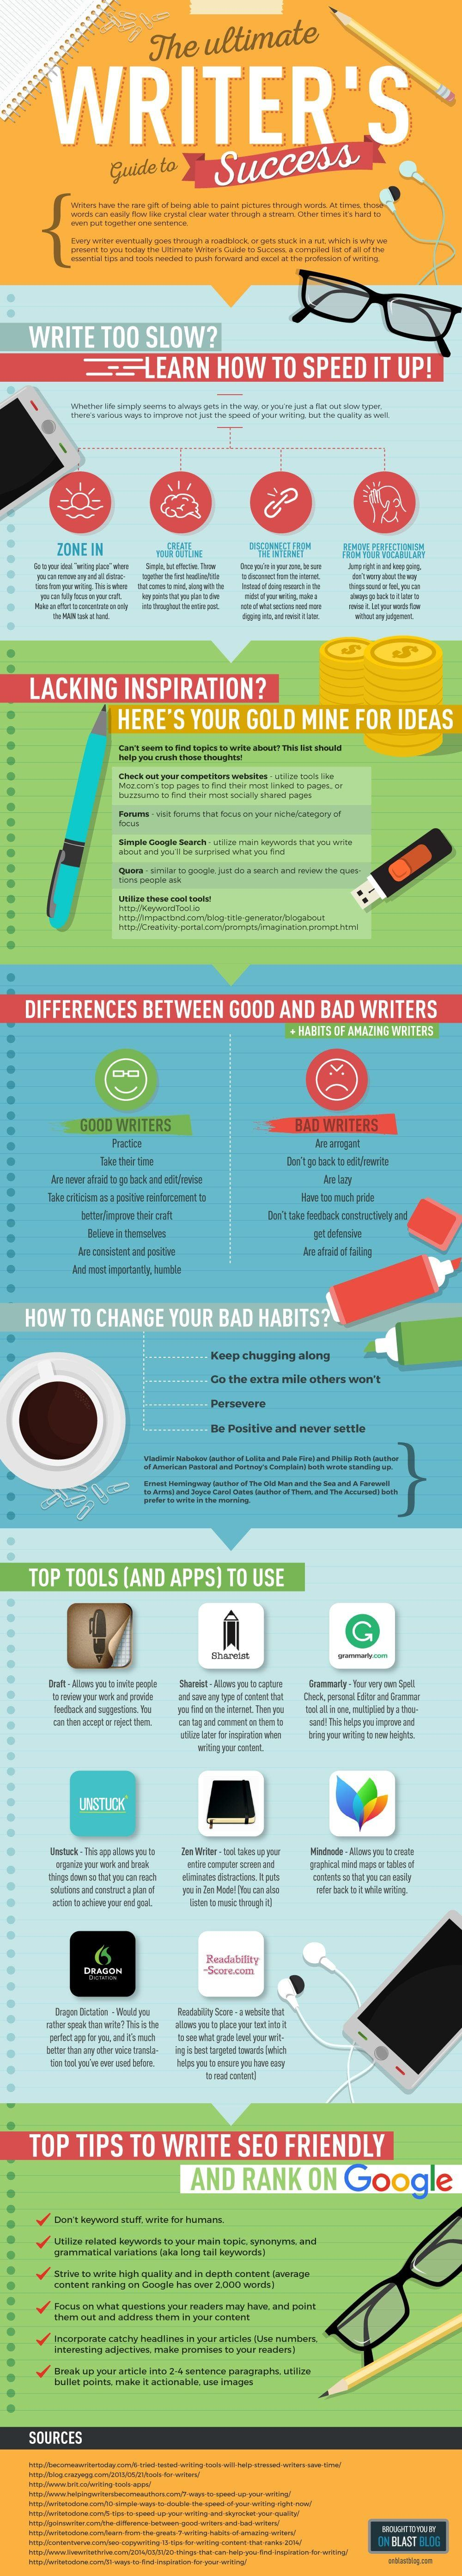 Writers guide to success infographic